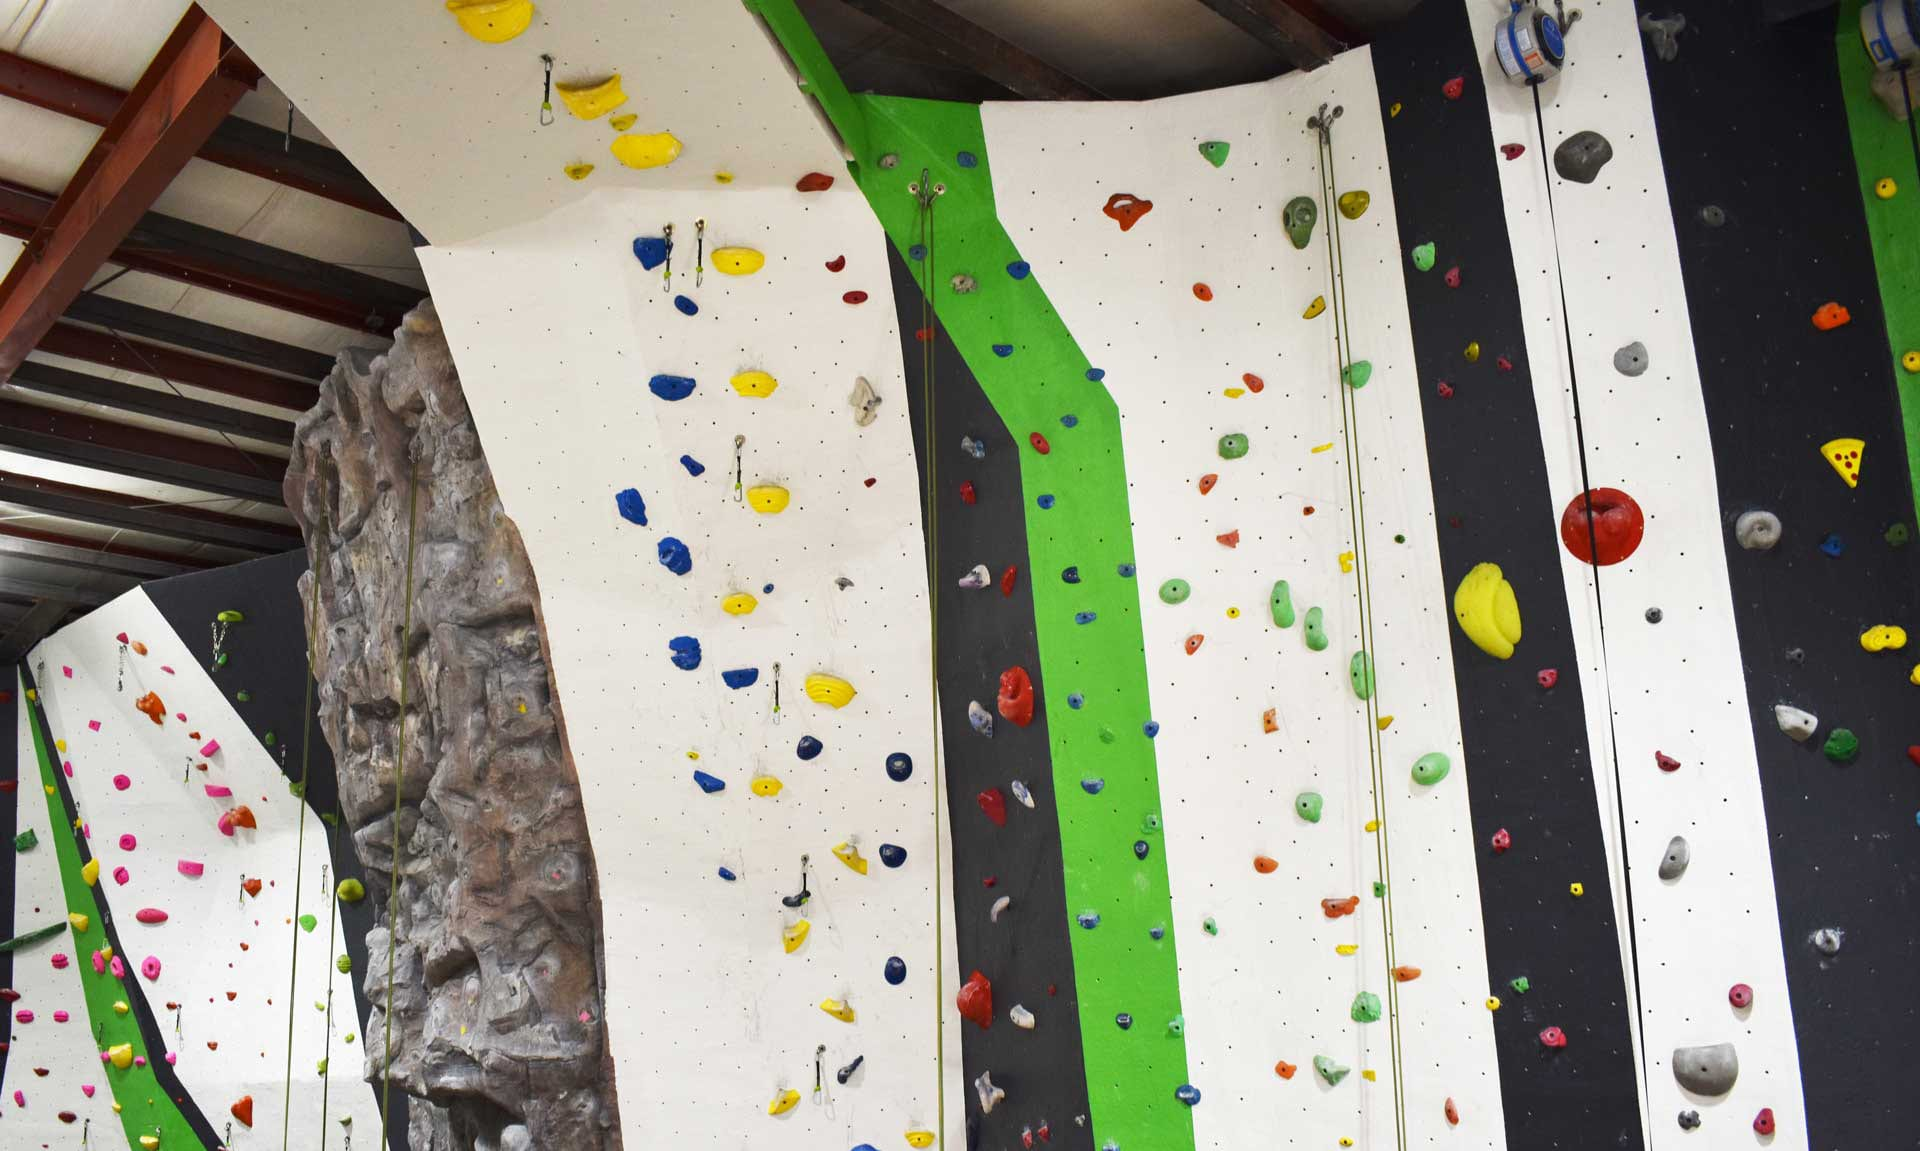 Kendall Cliffs Climbing Gym ReFresh